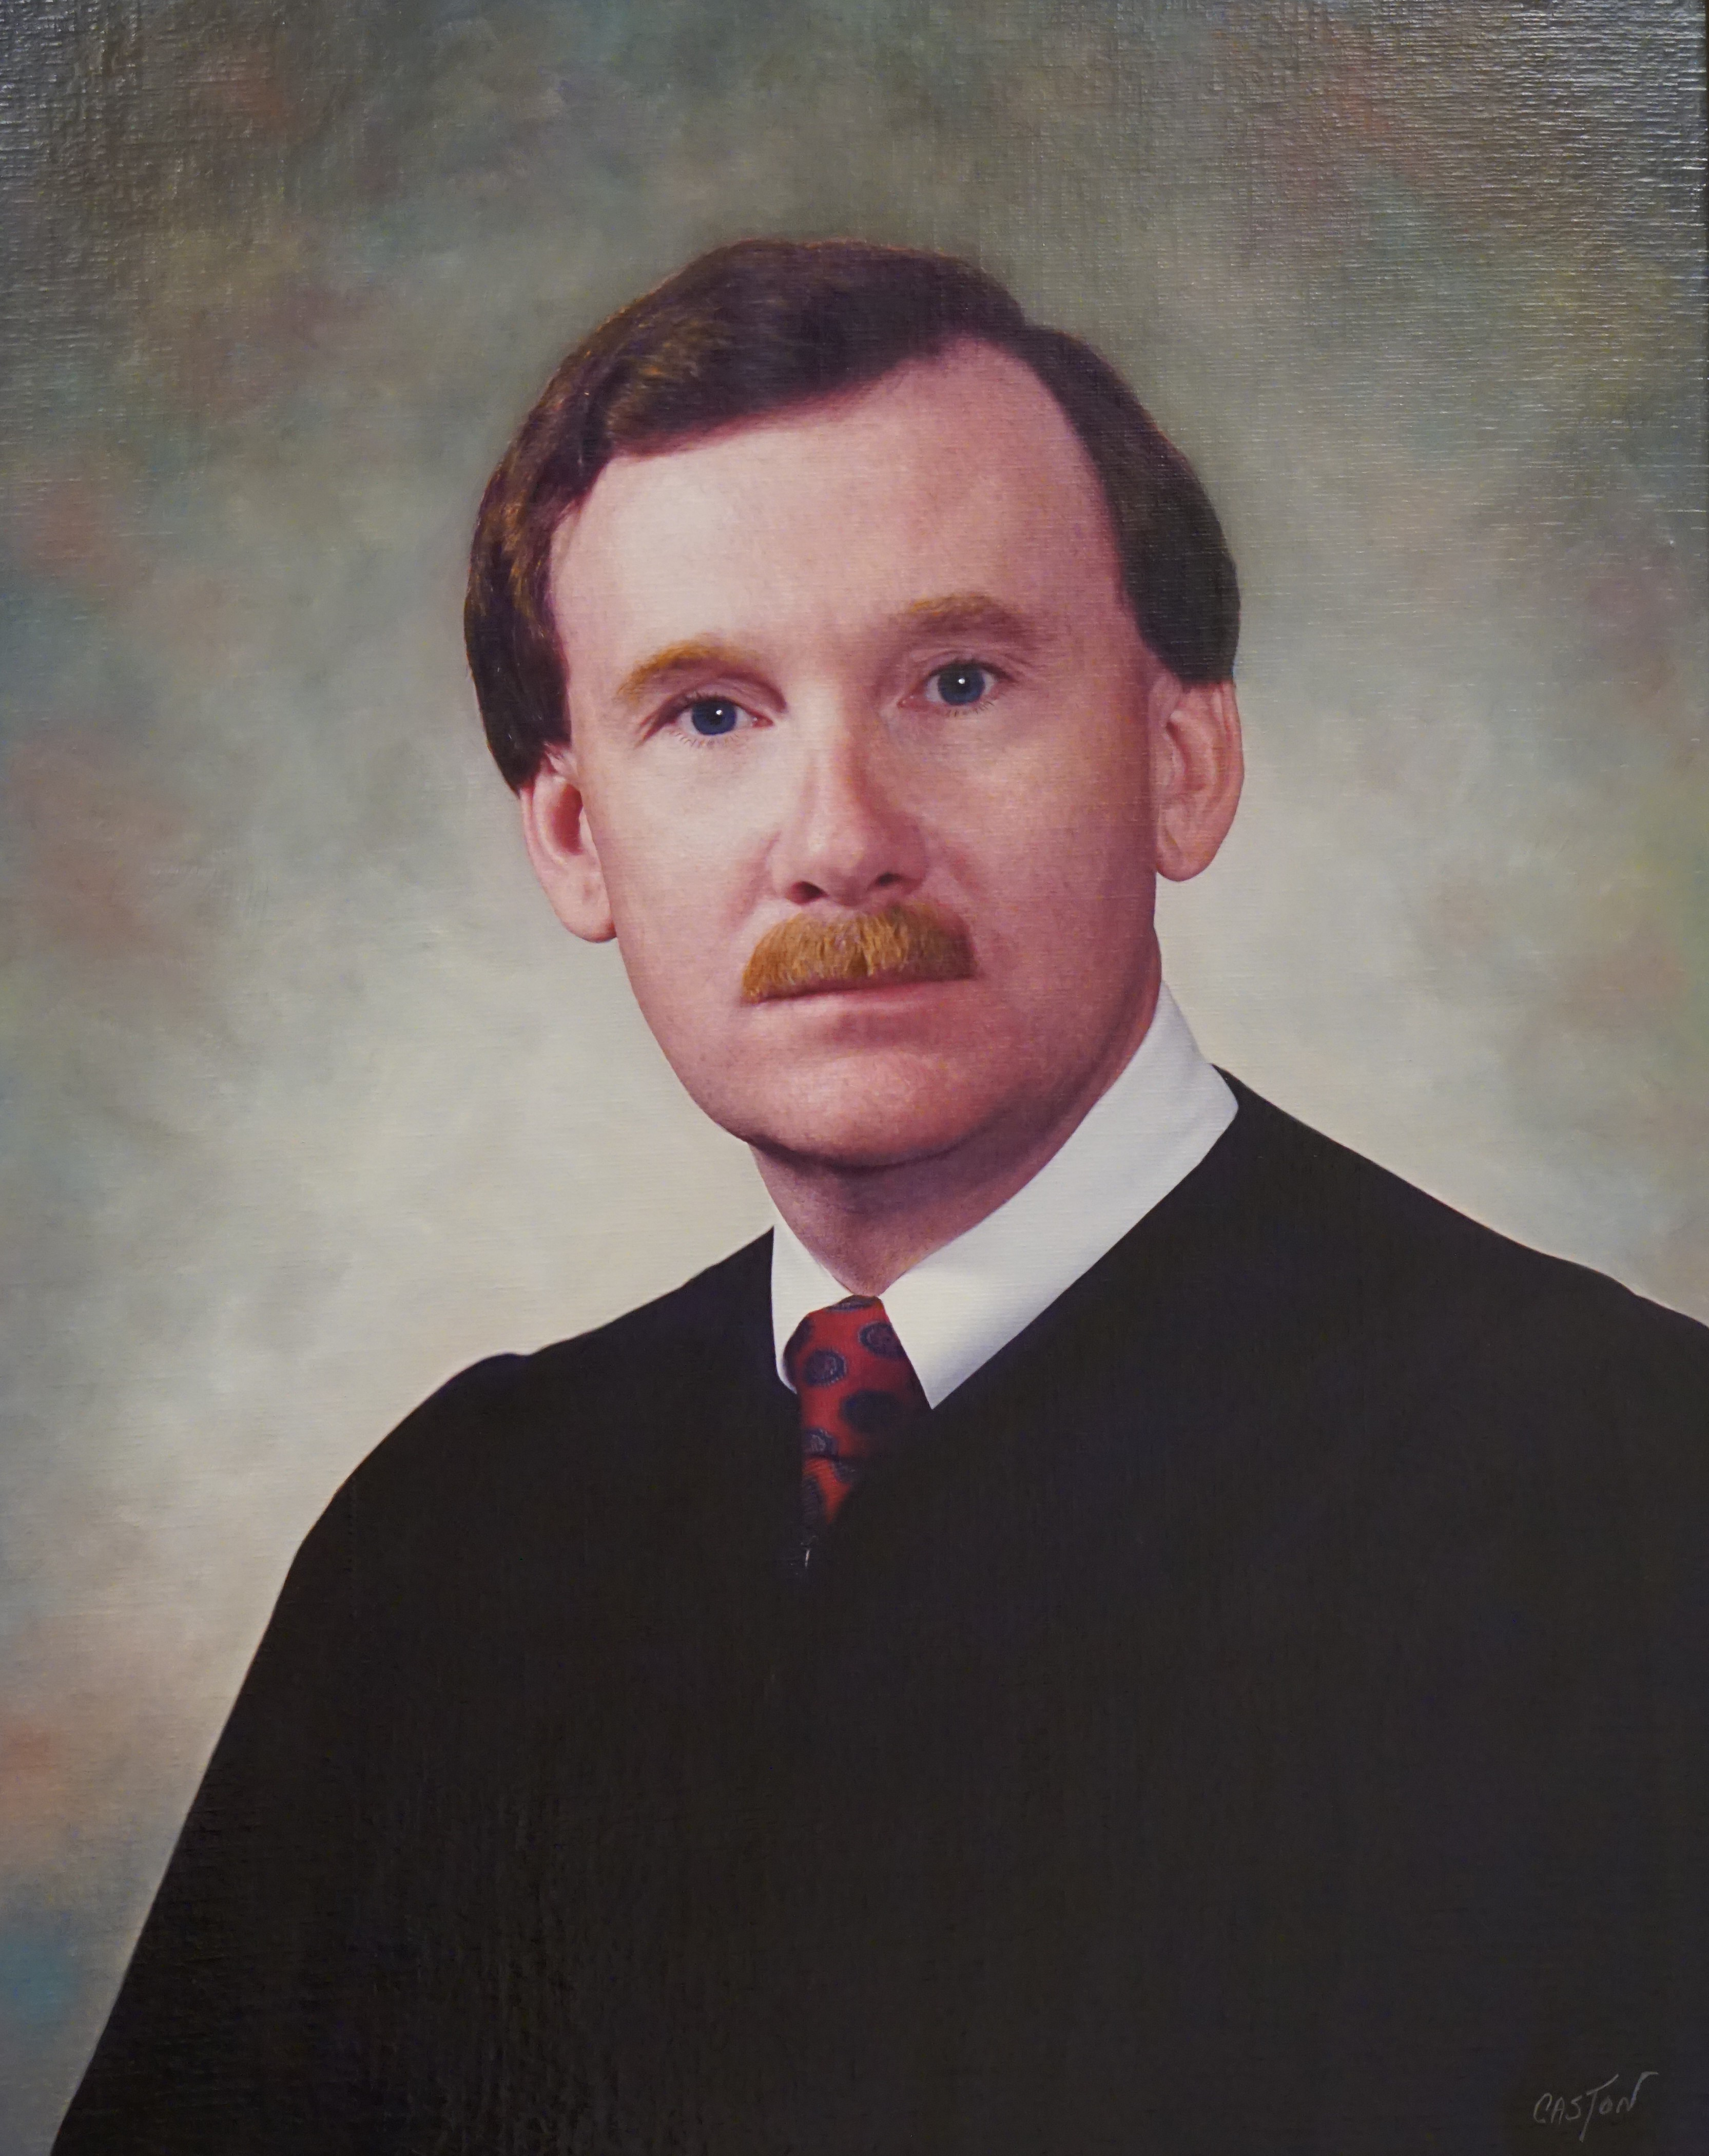 Judge Larry G. Elder